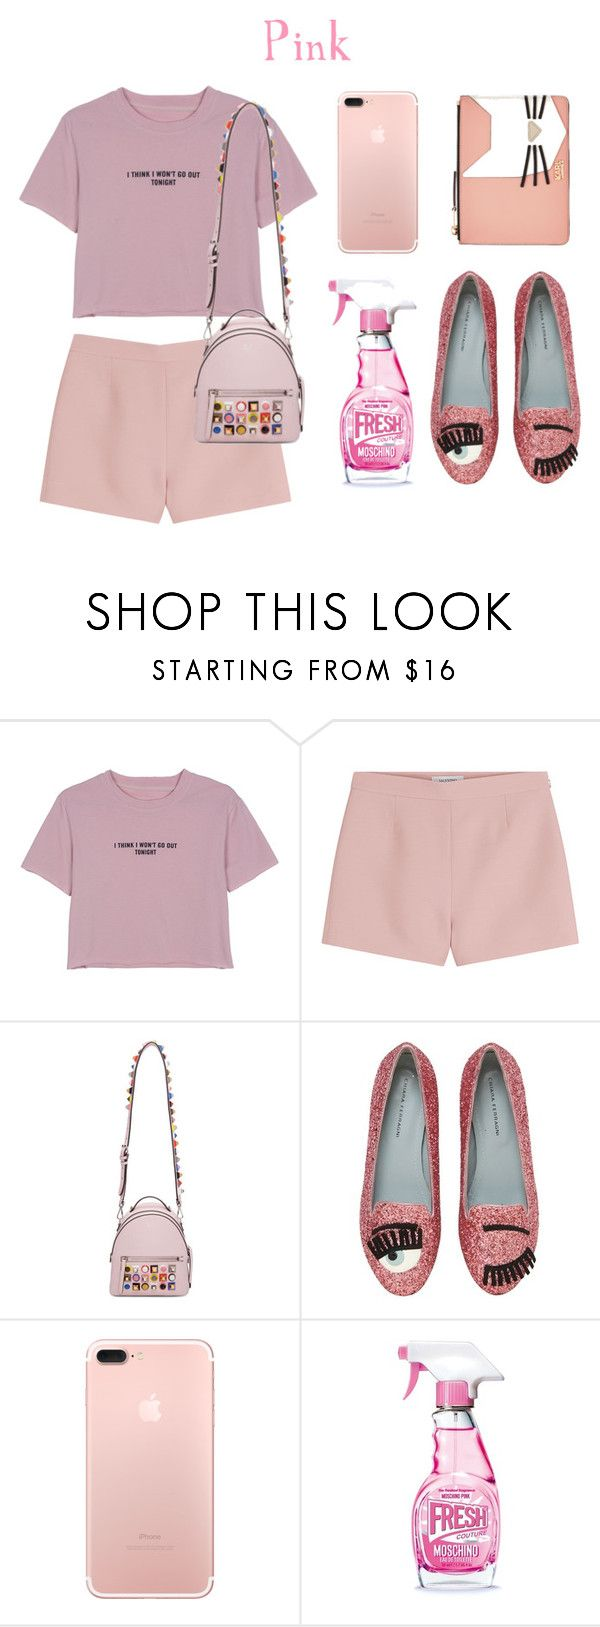 """PInk but different colors of pink"" by rose0810-1 ❤ liked on Polyvore featuring WithChic, Valentino, Fendi, Chiara Ferragni, Moschino and Karl Lagerfeld"